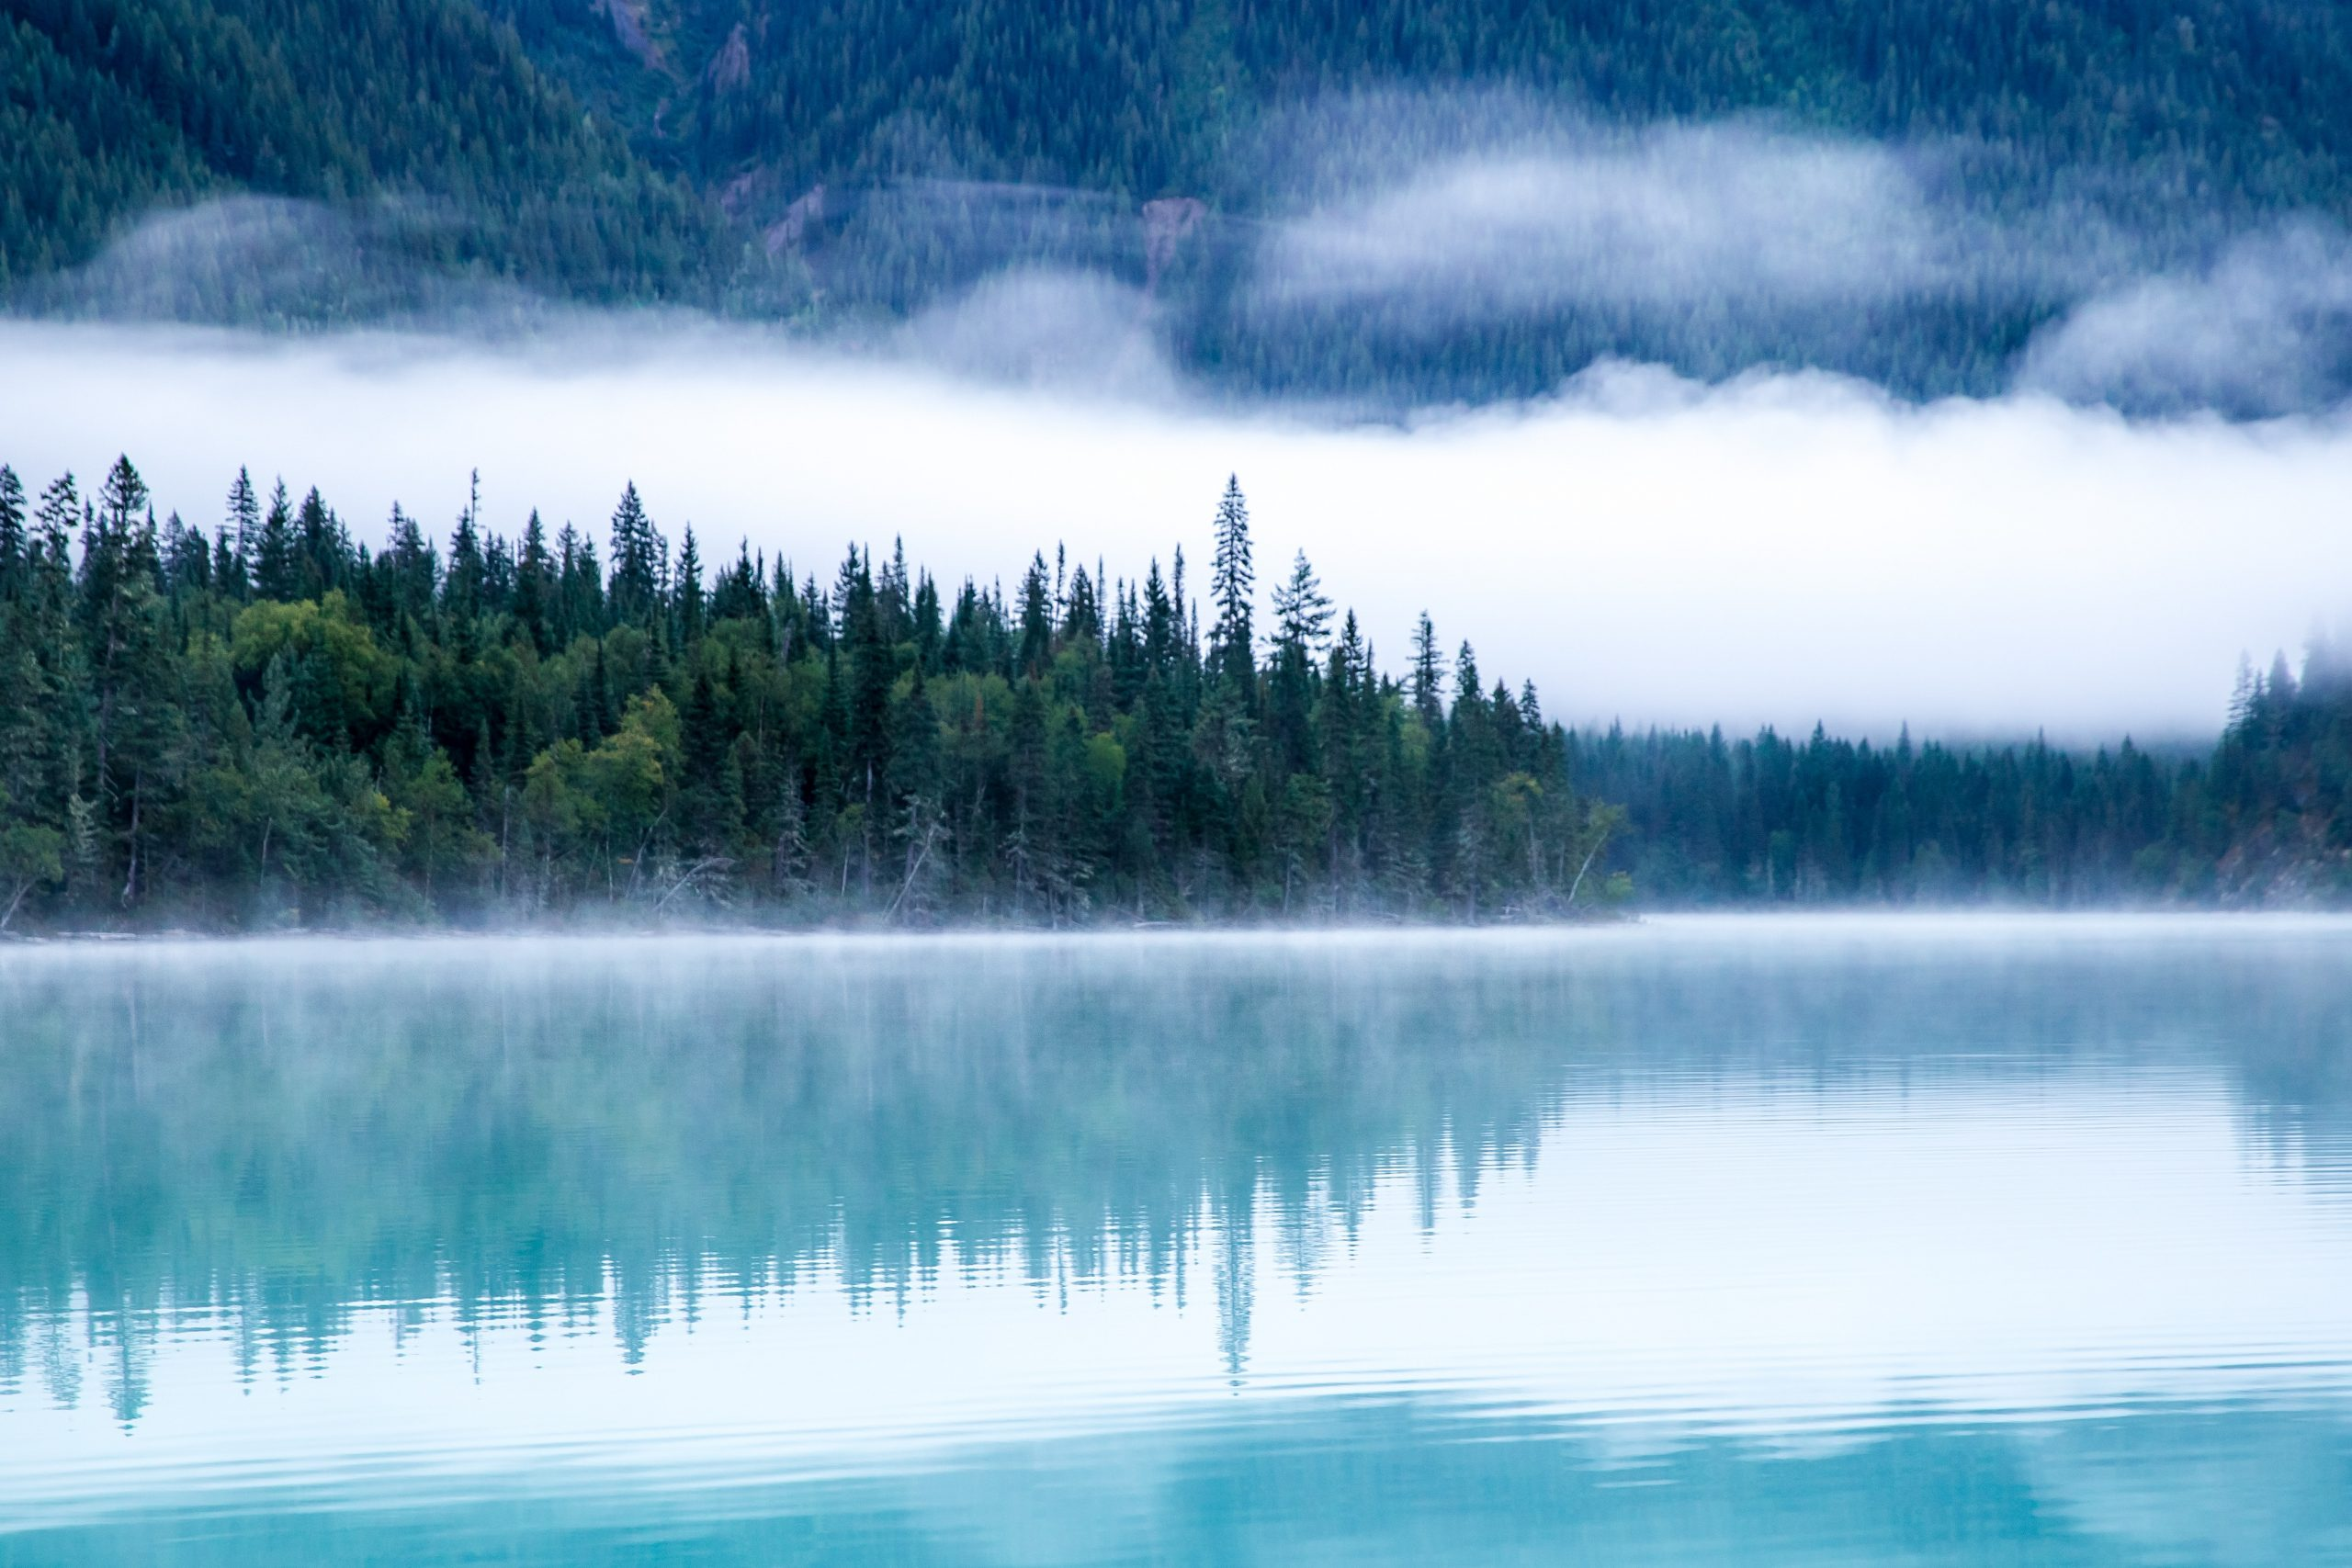 wallpaper Body of water surrounding with trees